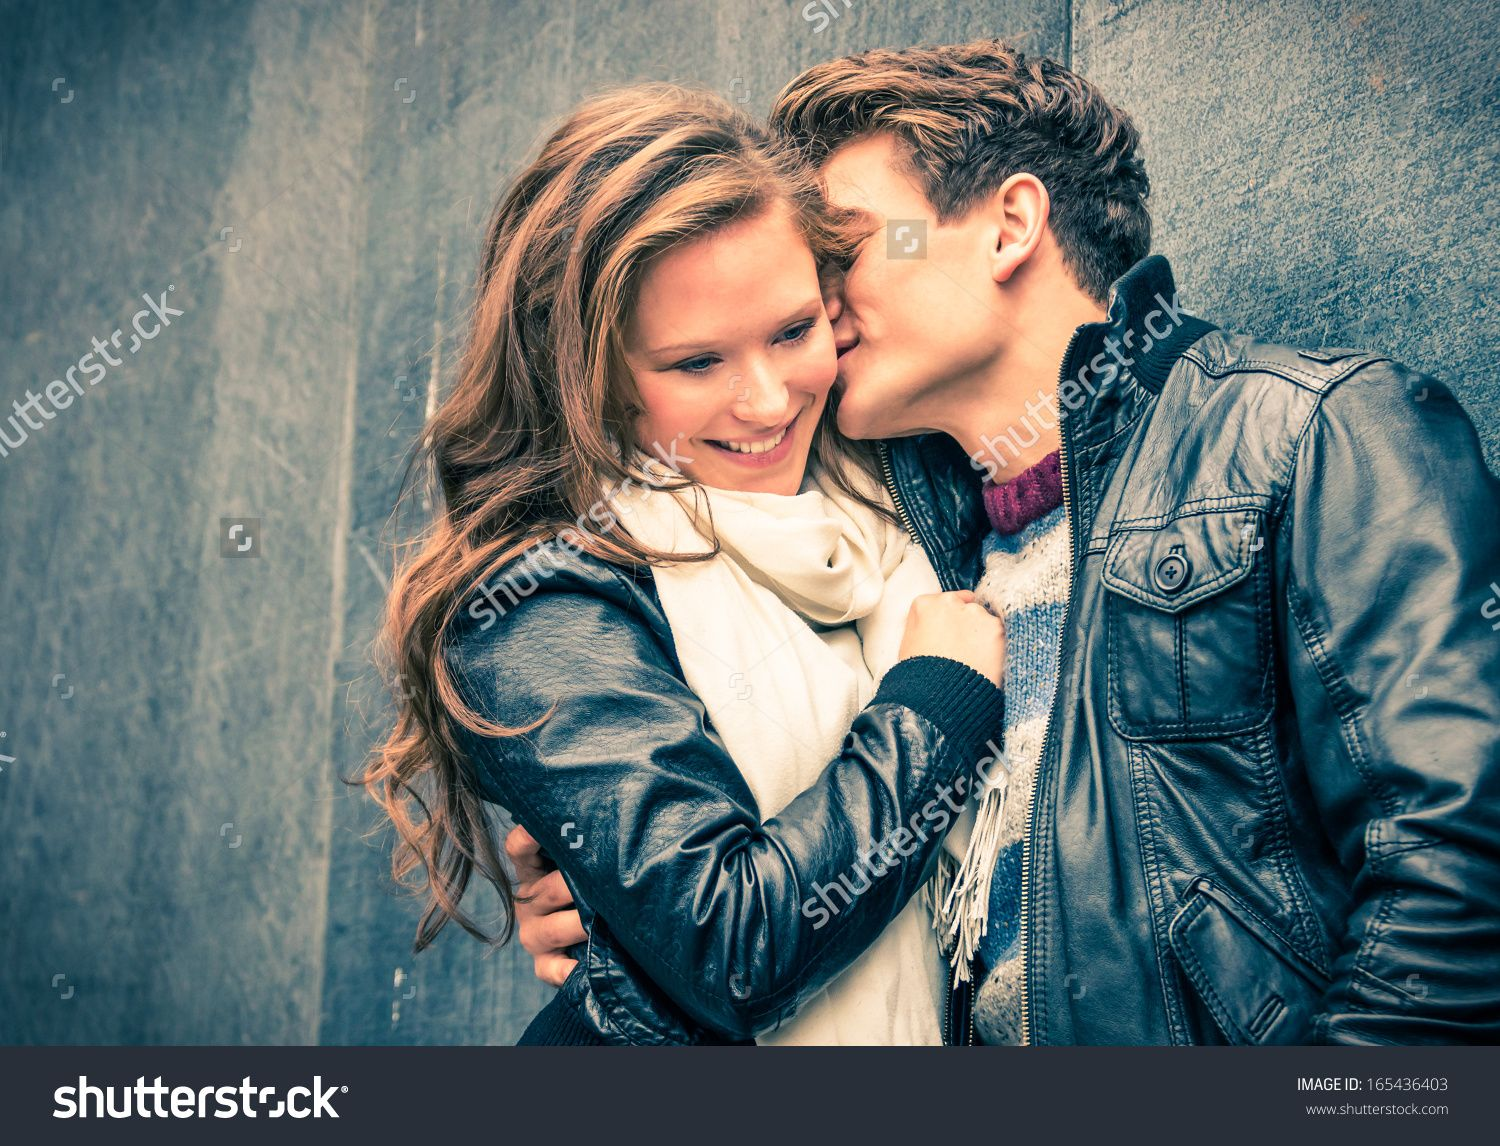 Do relationships from hookup sites work